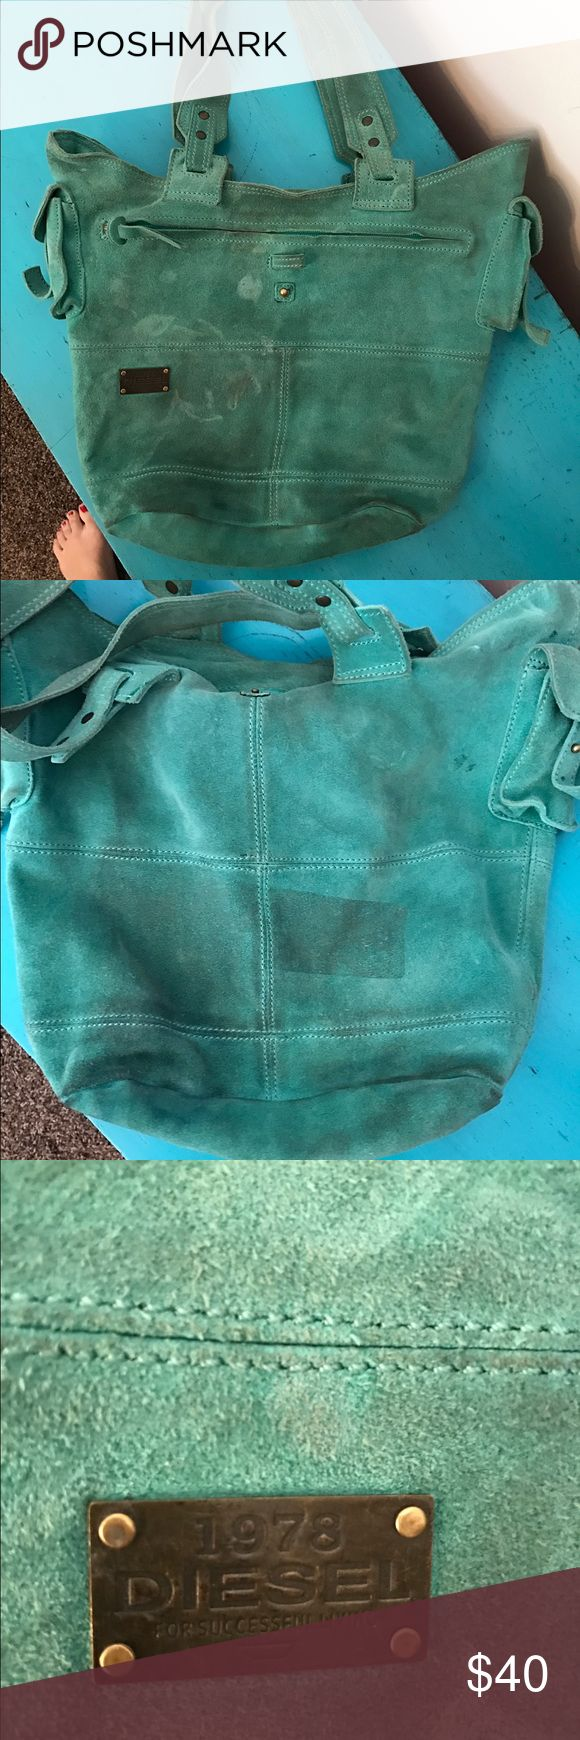 Diesel turquoise purse. Diesel purse. Used condition with some wear but lots of life left. Gorgeous purse in a turquoise color. Diesel Bags Shoulder Bags